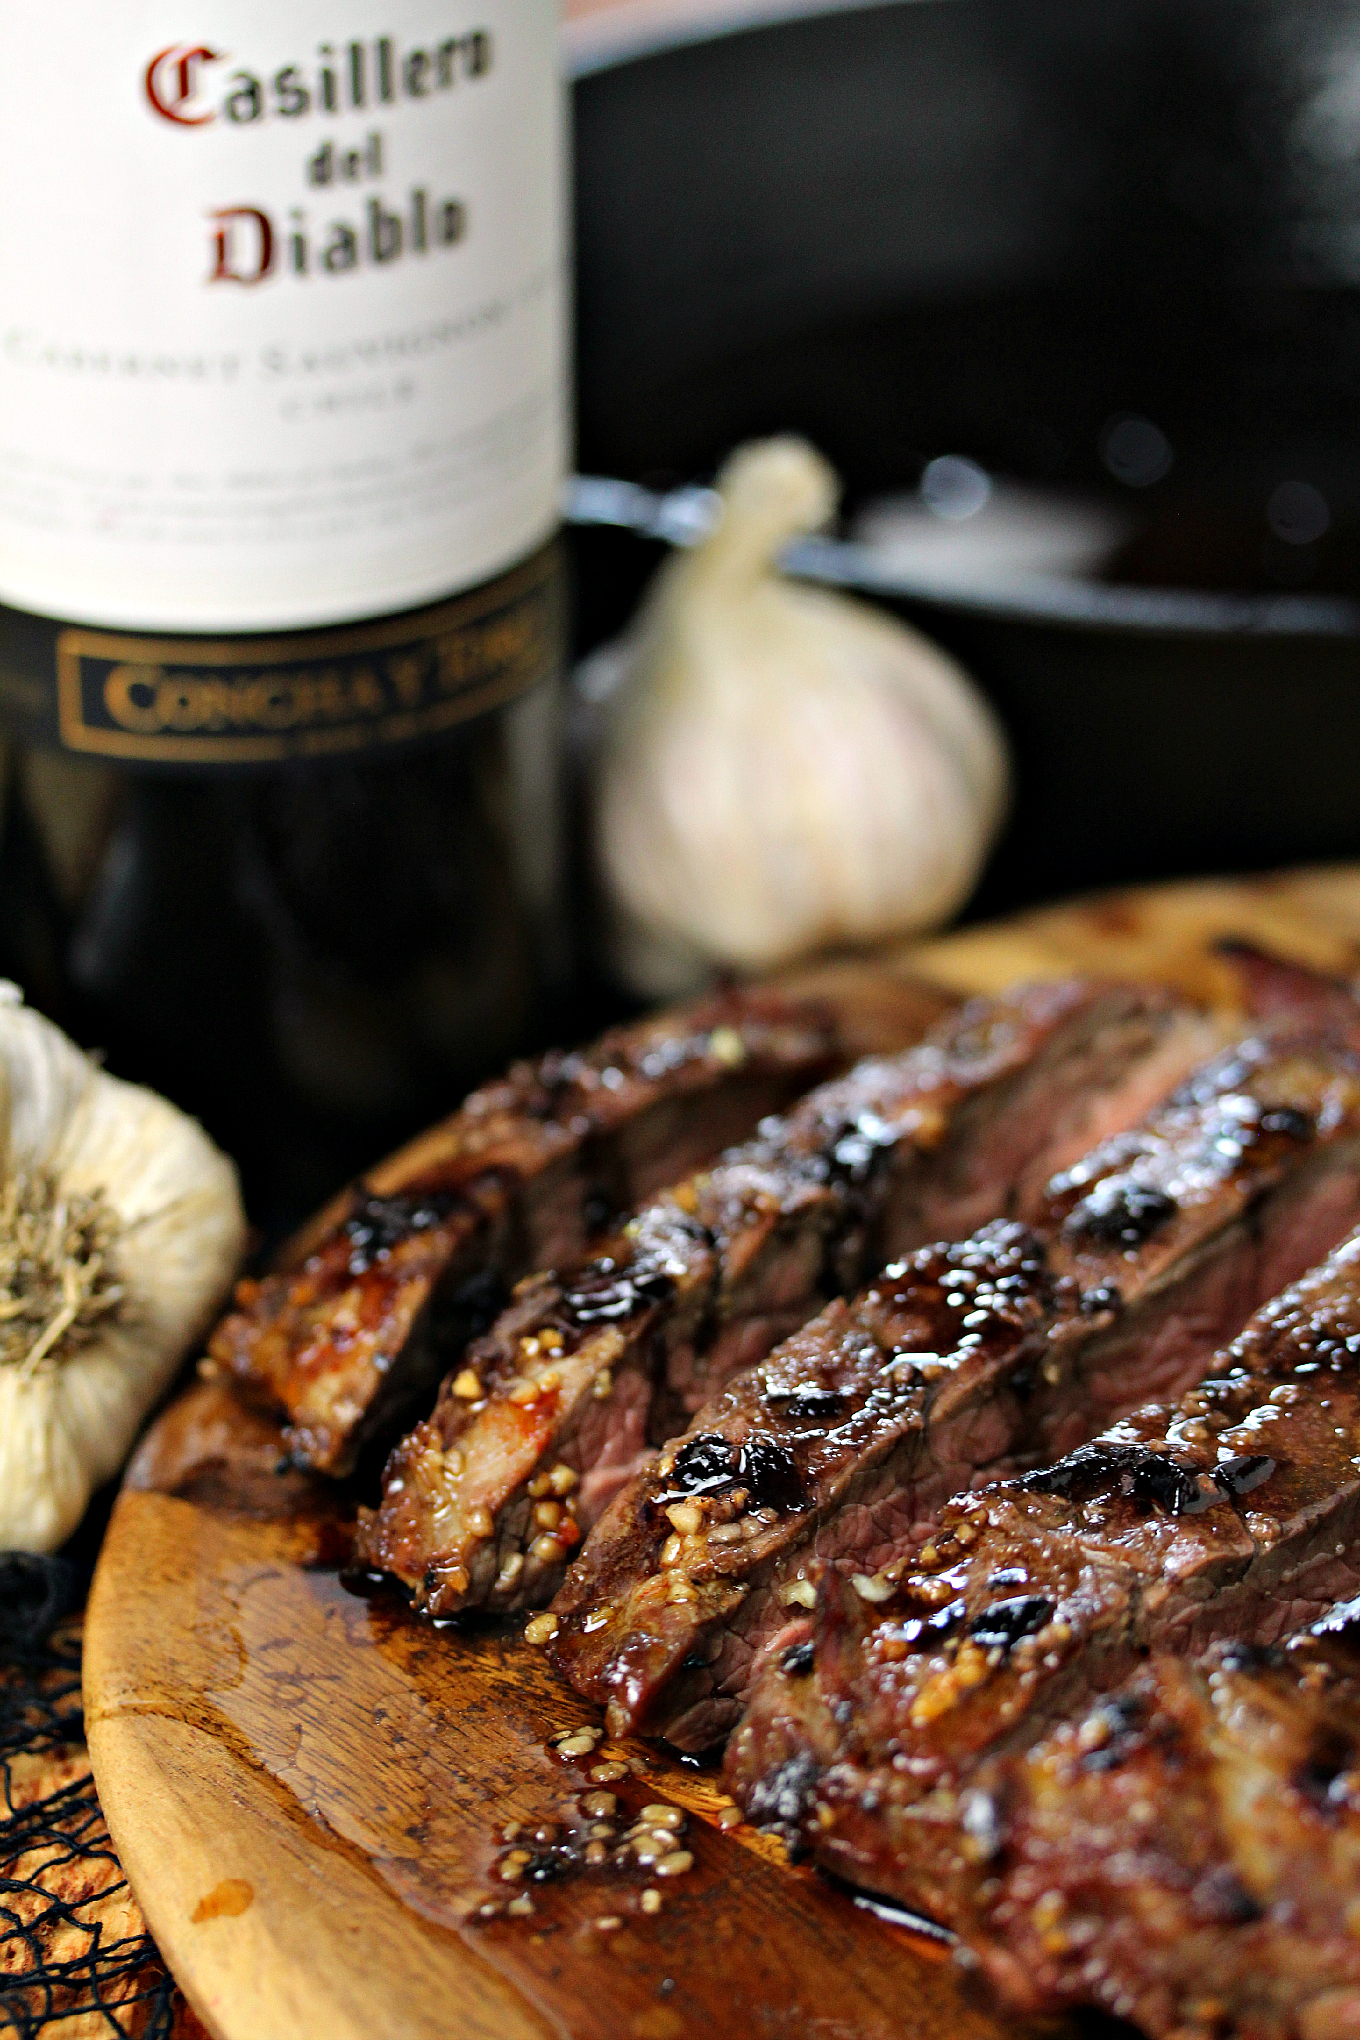 Vampire Steaks with Garlic Red Wine Reduction for Casillero del Diablo Wines- This recipe uses flank steak marinated in garlic then grilled to perfection. It's topped with a red wine reduction made with garlic and onions. This is perfection for Halloween, or any time of the year.